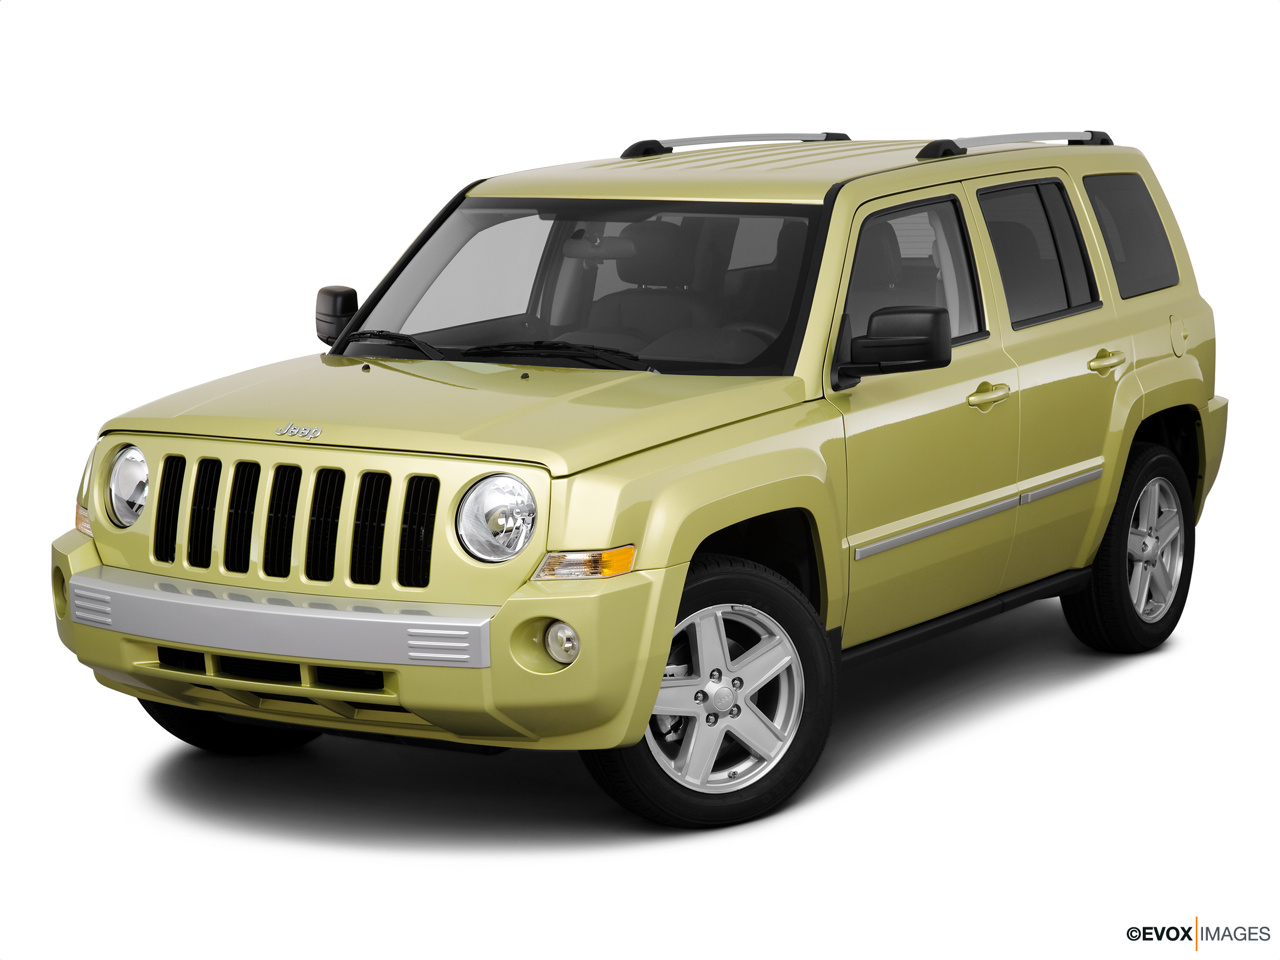 2010 Jeep Patriot Limited Front angle view.